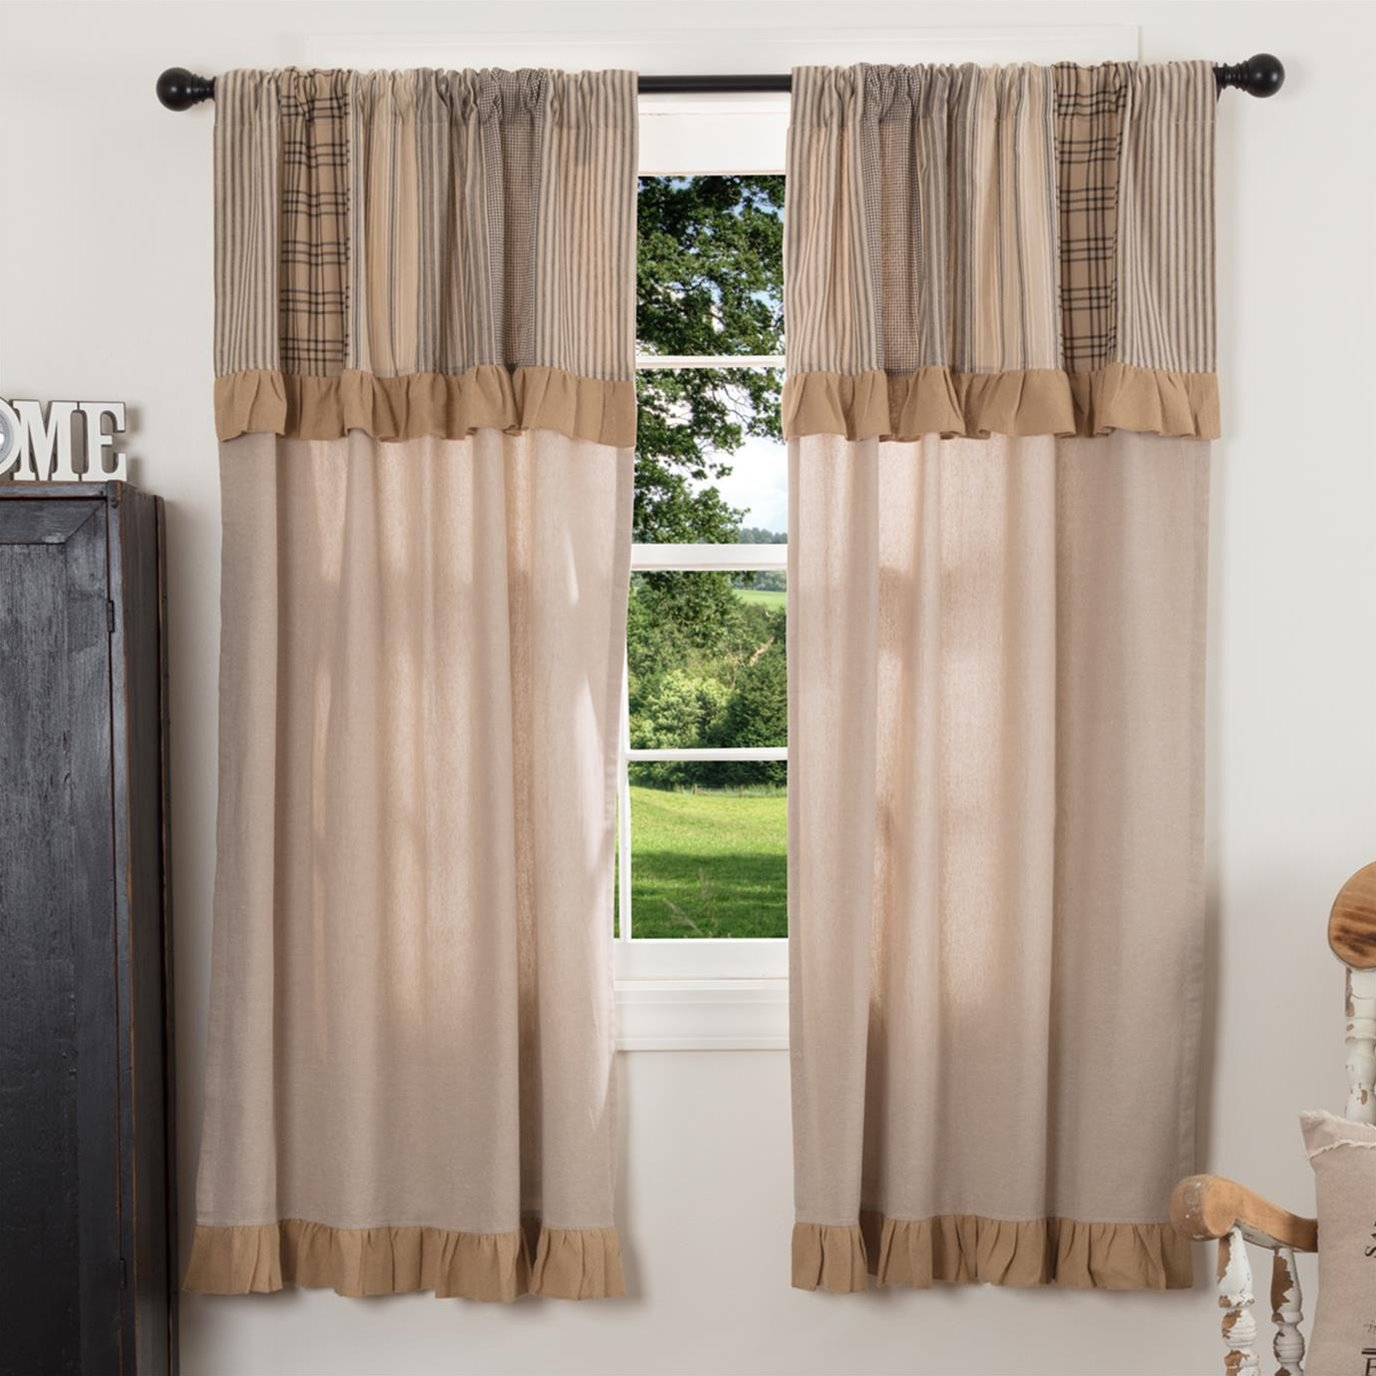 Sawyer Mill Charcoal Short Panel with Attached Patchwork Valance Set of 2 63x36